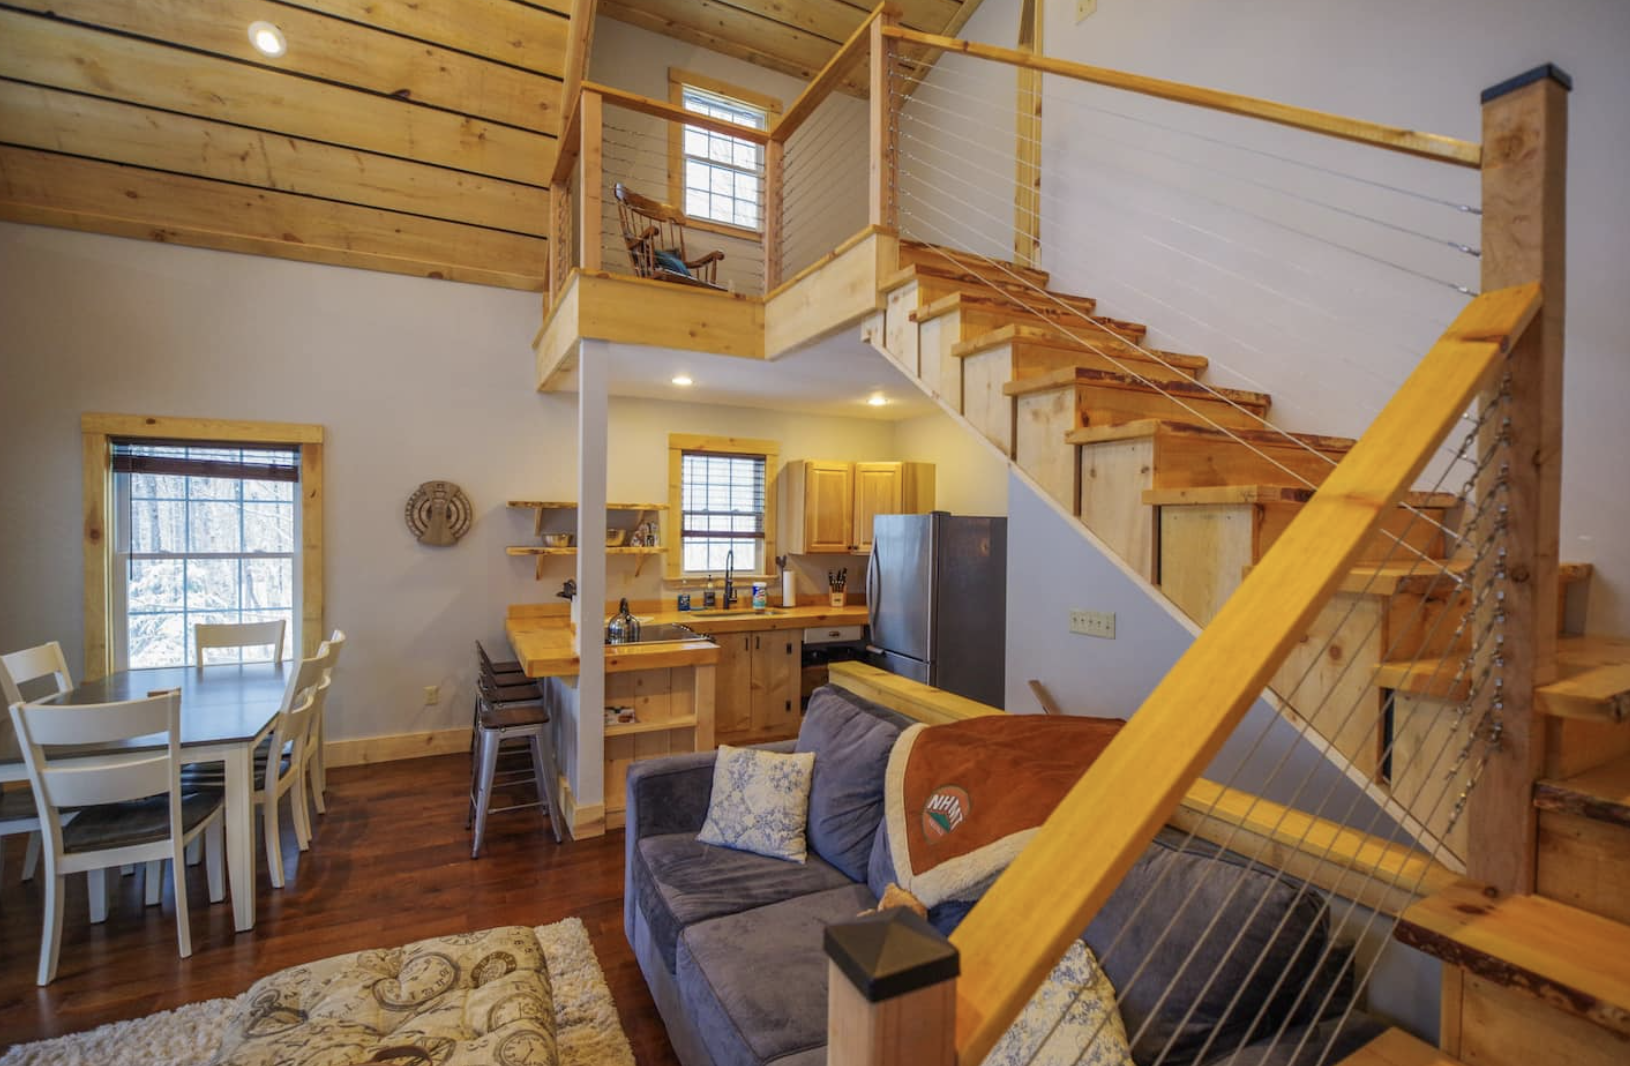 New Cabin, Hot Tub, Wooded, River, Fire Place 8 Airbnb locations I would visit right now by Nicole Eva